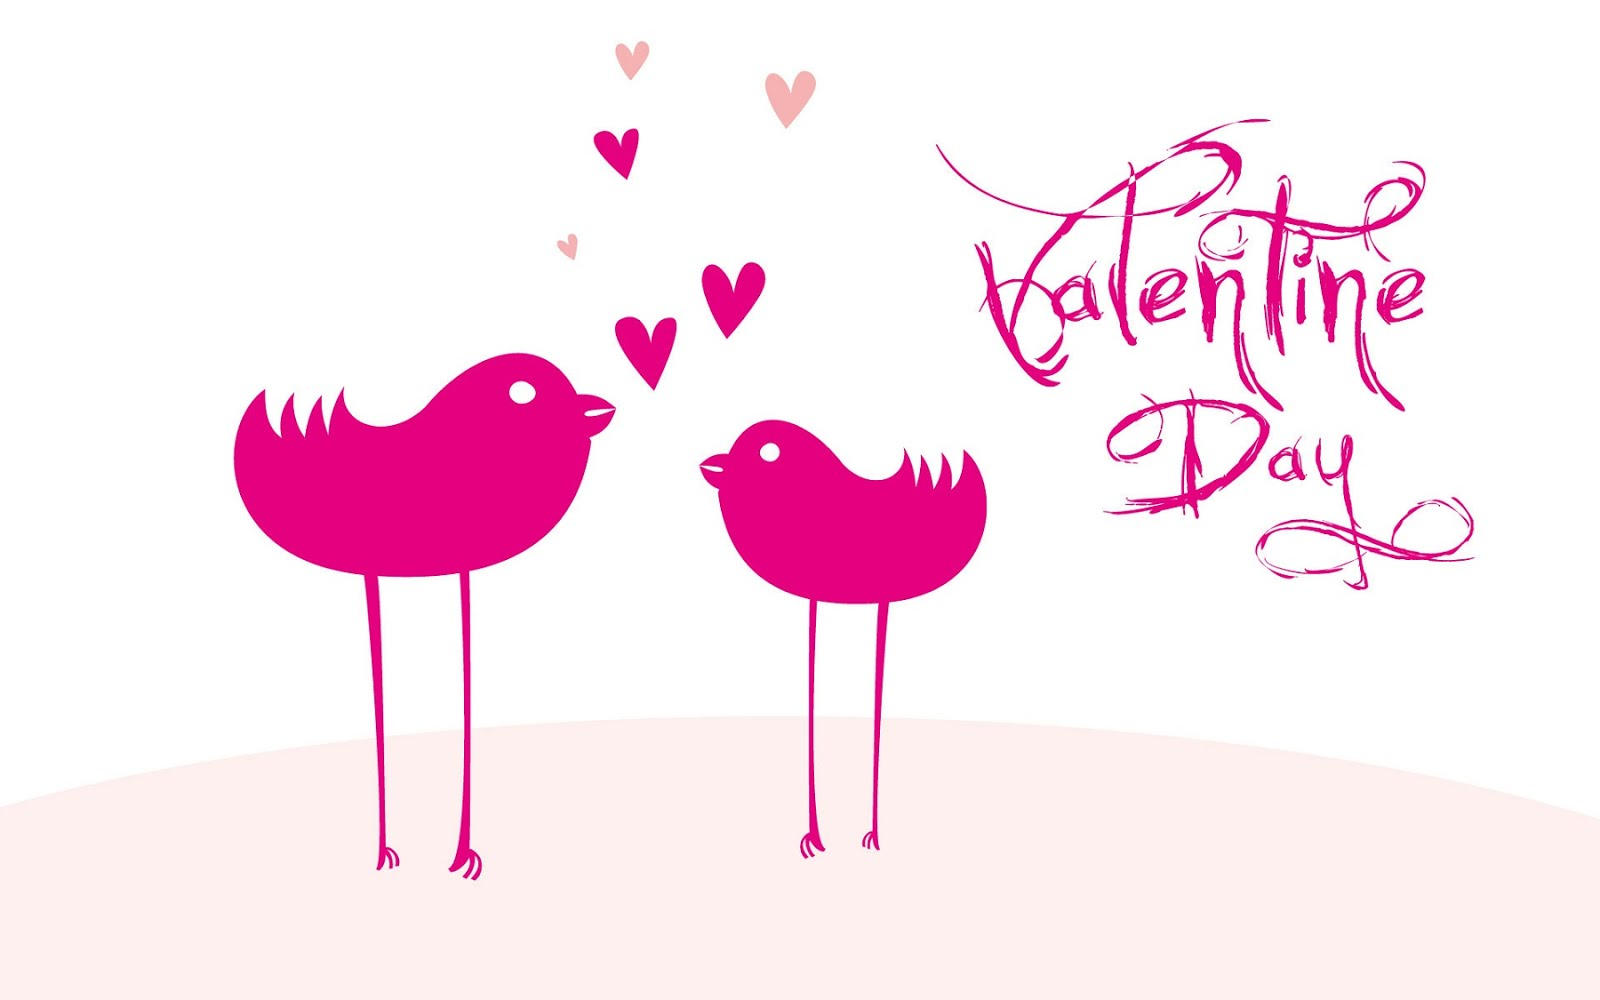 happy valentines day messages images 2017 - Happy Valentines Day Text